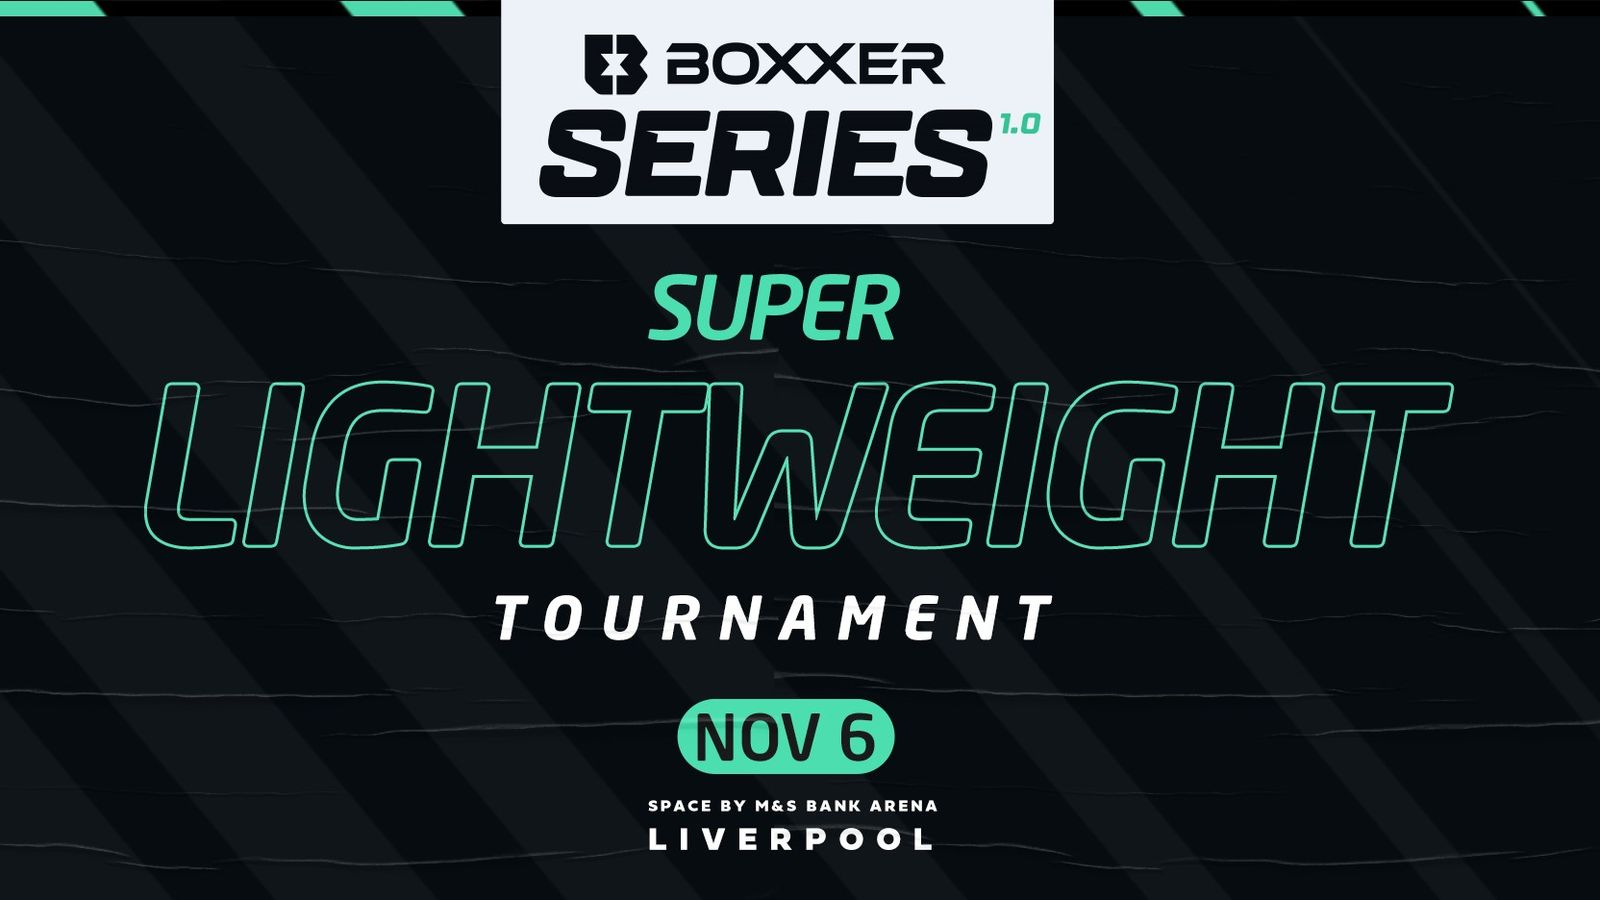 BOXXER SERIES line-up confirmed for Liverpool